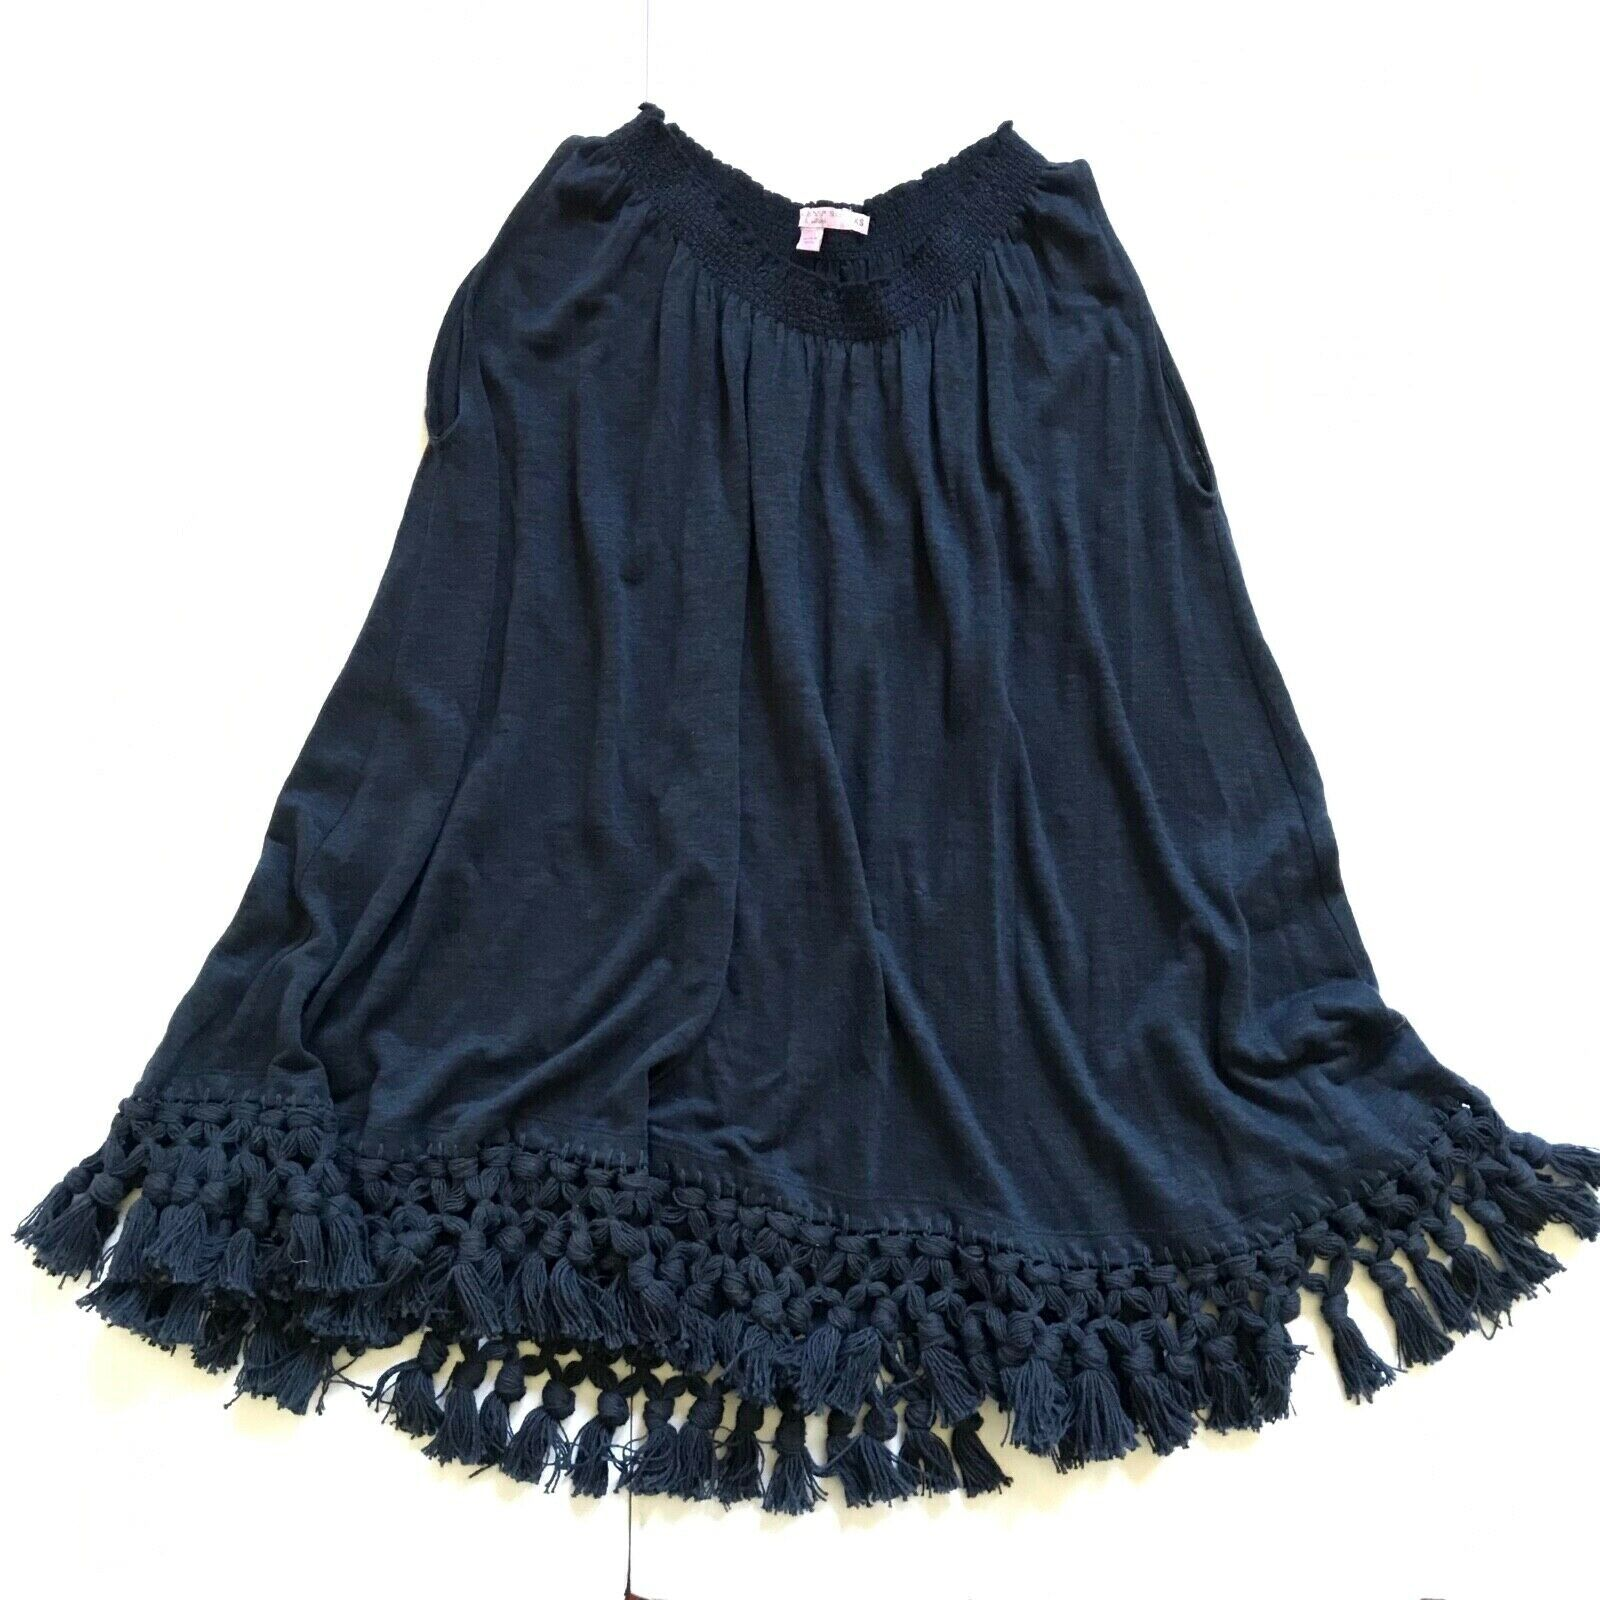 Calypso St. Barth Funlu Fringe Shirt Top damen XS Navy Blau Sleeveless Linen S